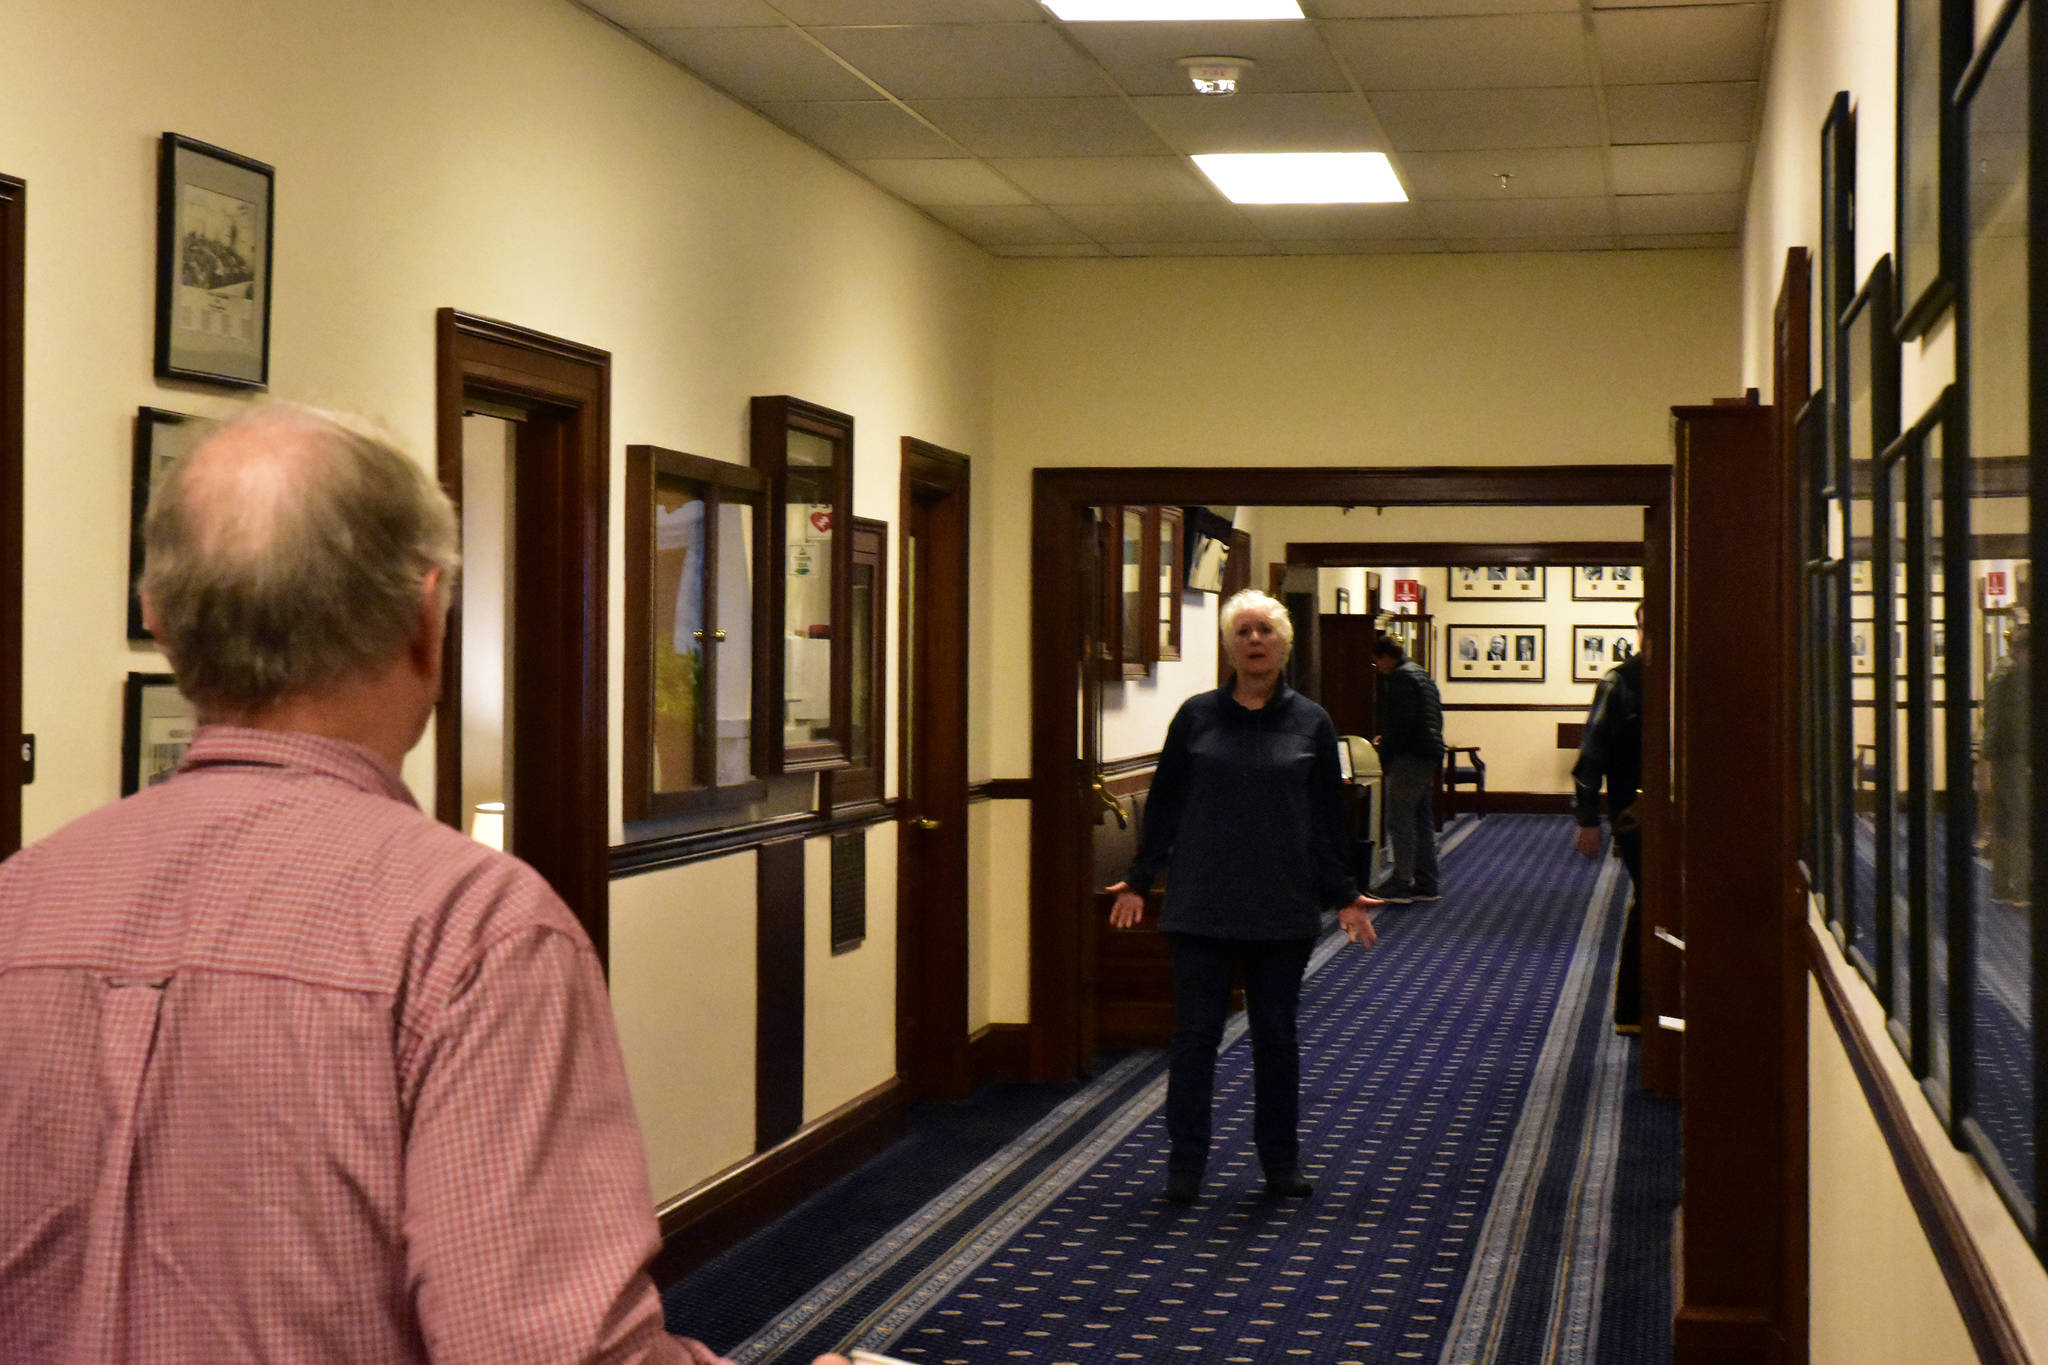 Rep. Louise Stutes, R-Kodiak, chats in the hallway of the Alaska State Capitol on Monday. (Peter Segall | Juneau Empire)